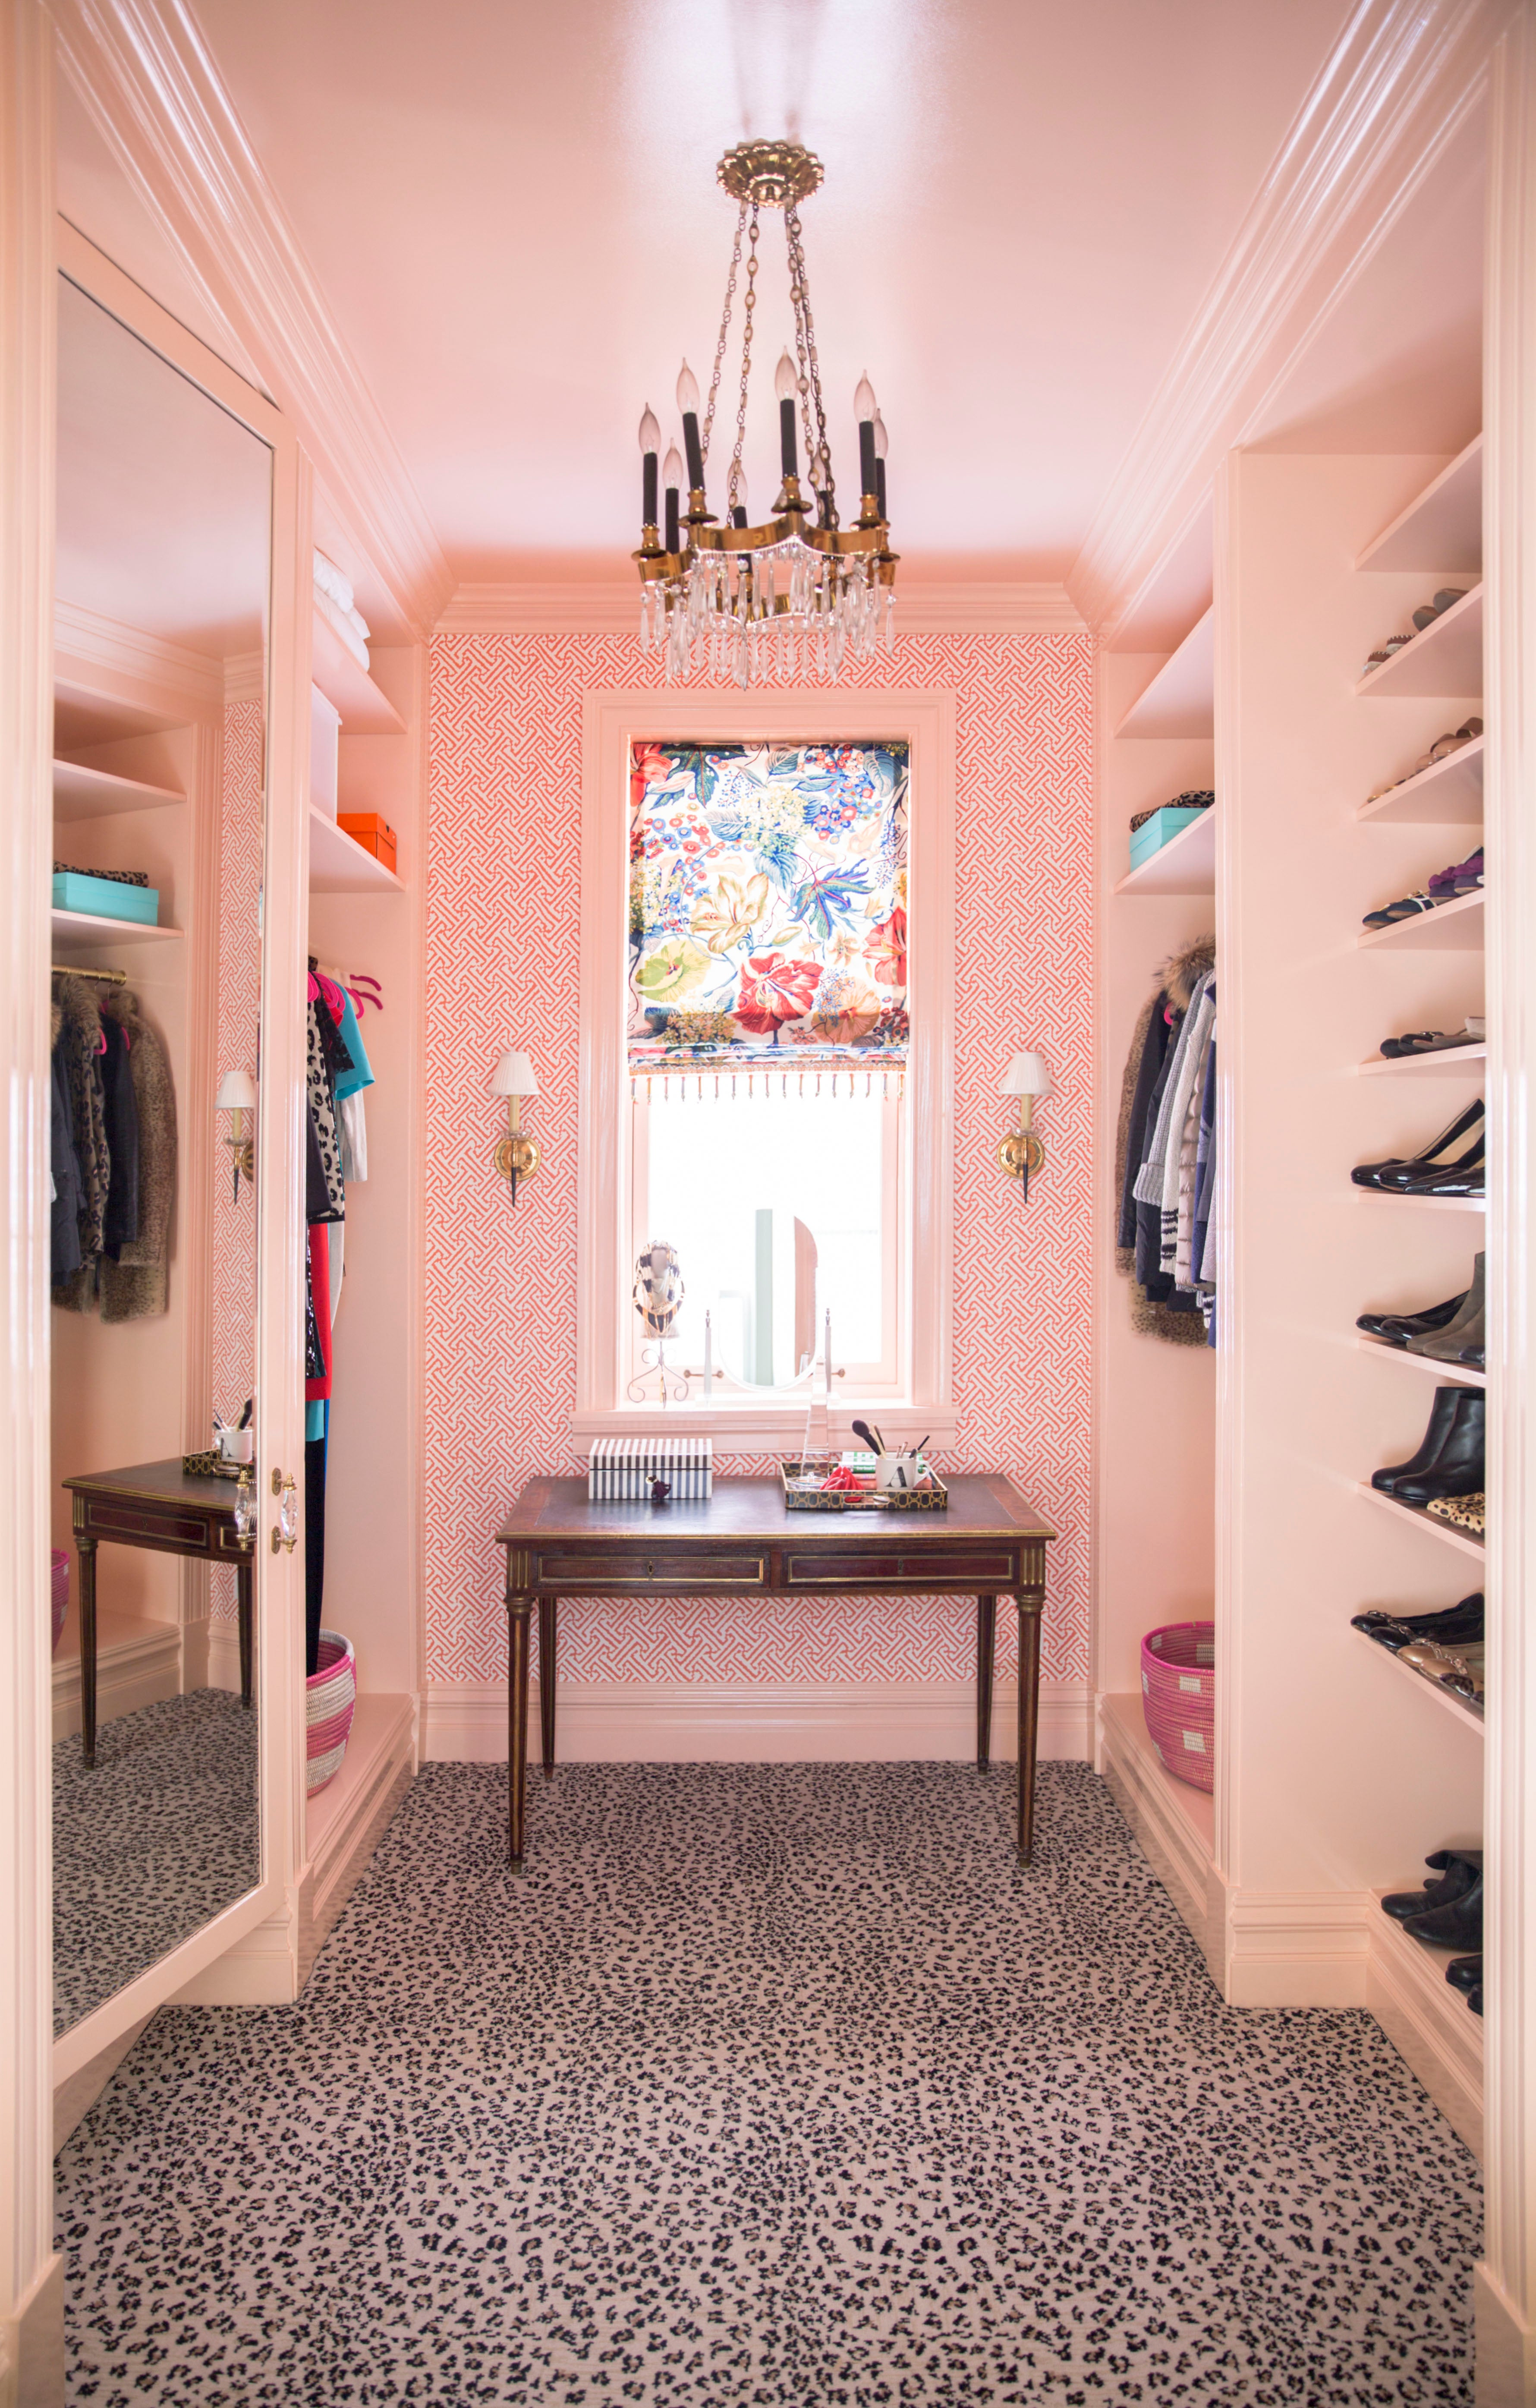 Storage Room And Closet In Chicago, IL By Summer Thornton Design